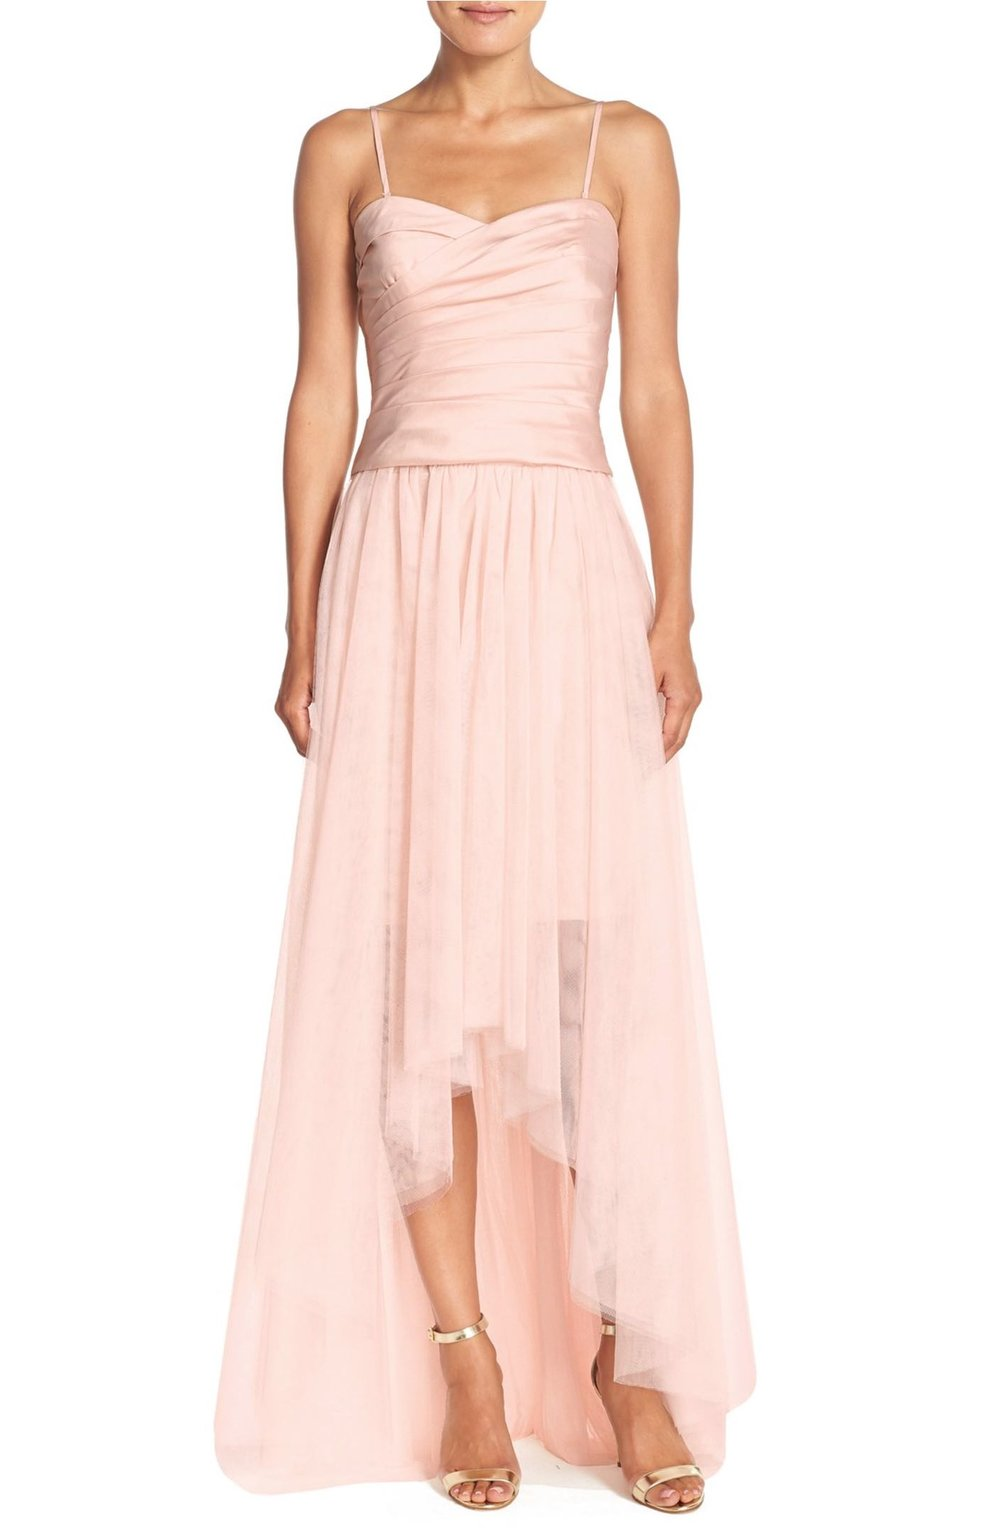 Reminiscent of a prima ballerina this high low tulle skirt by Monique Lhuillier brings a fresh look to a formal affair.